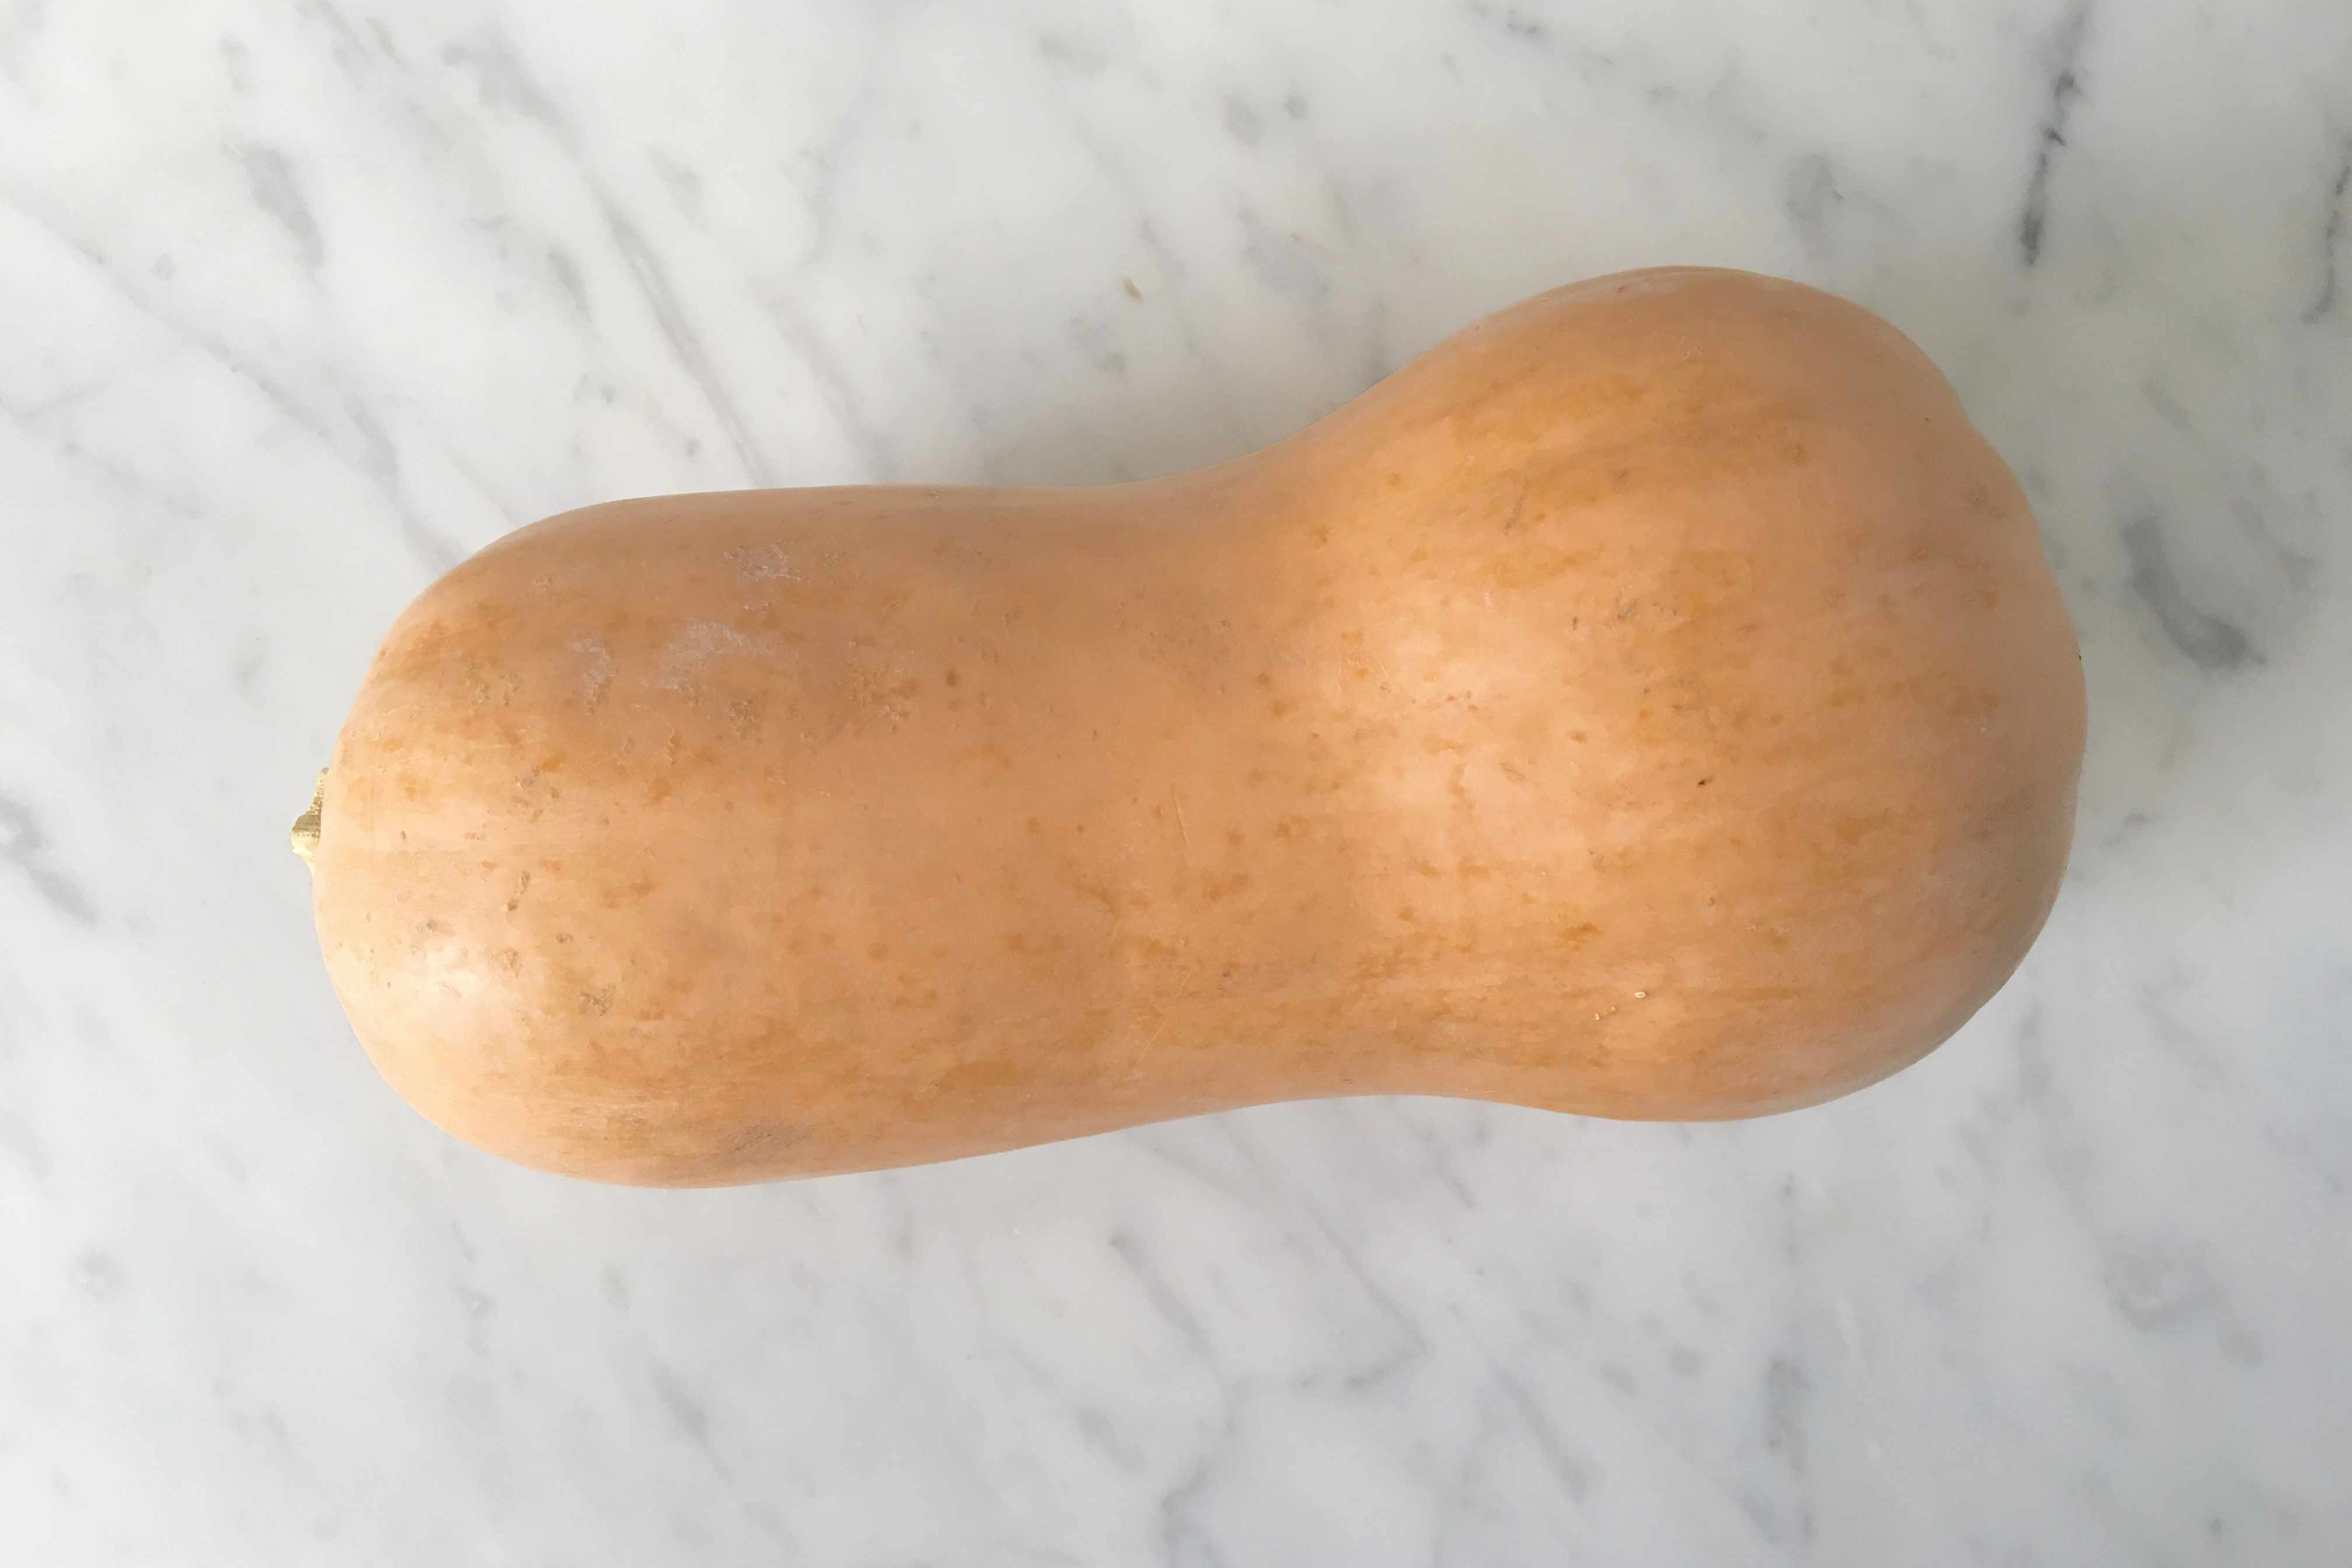 Squash to cook